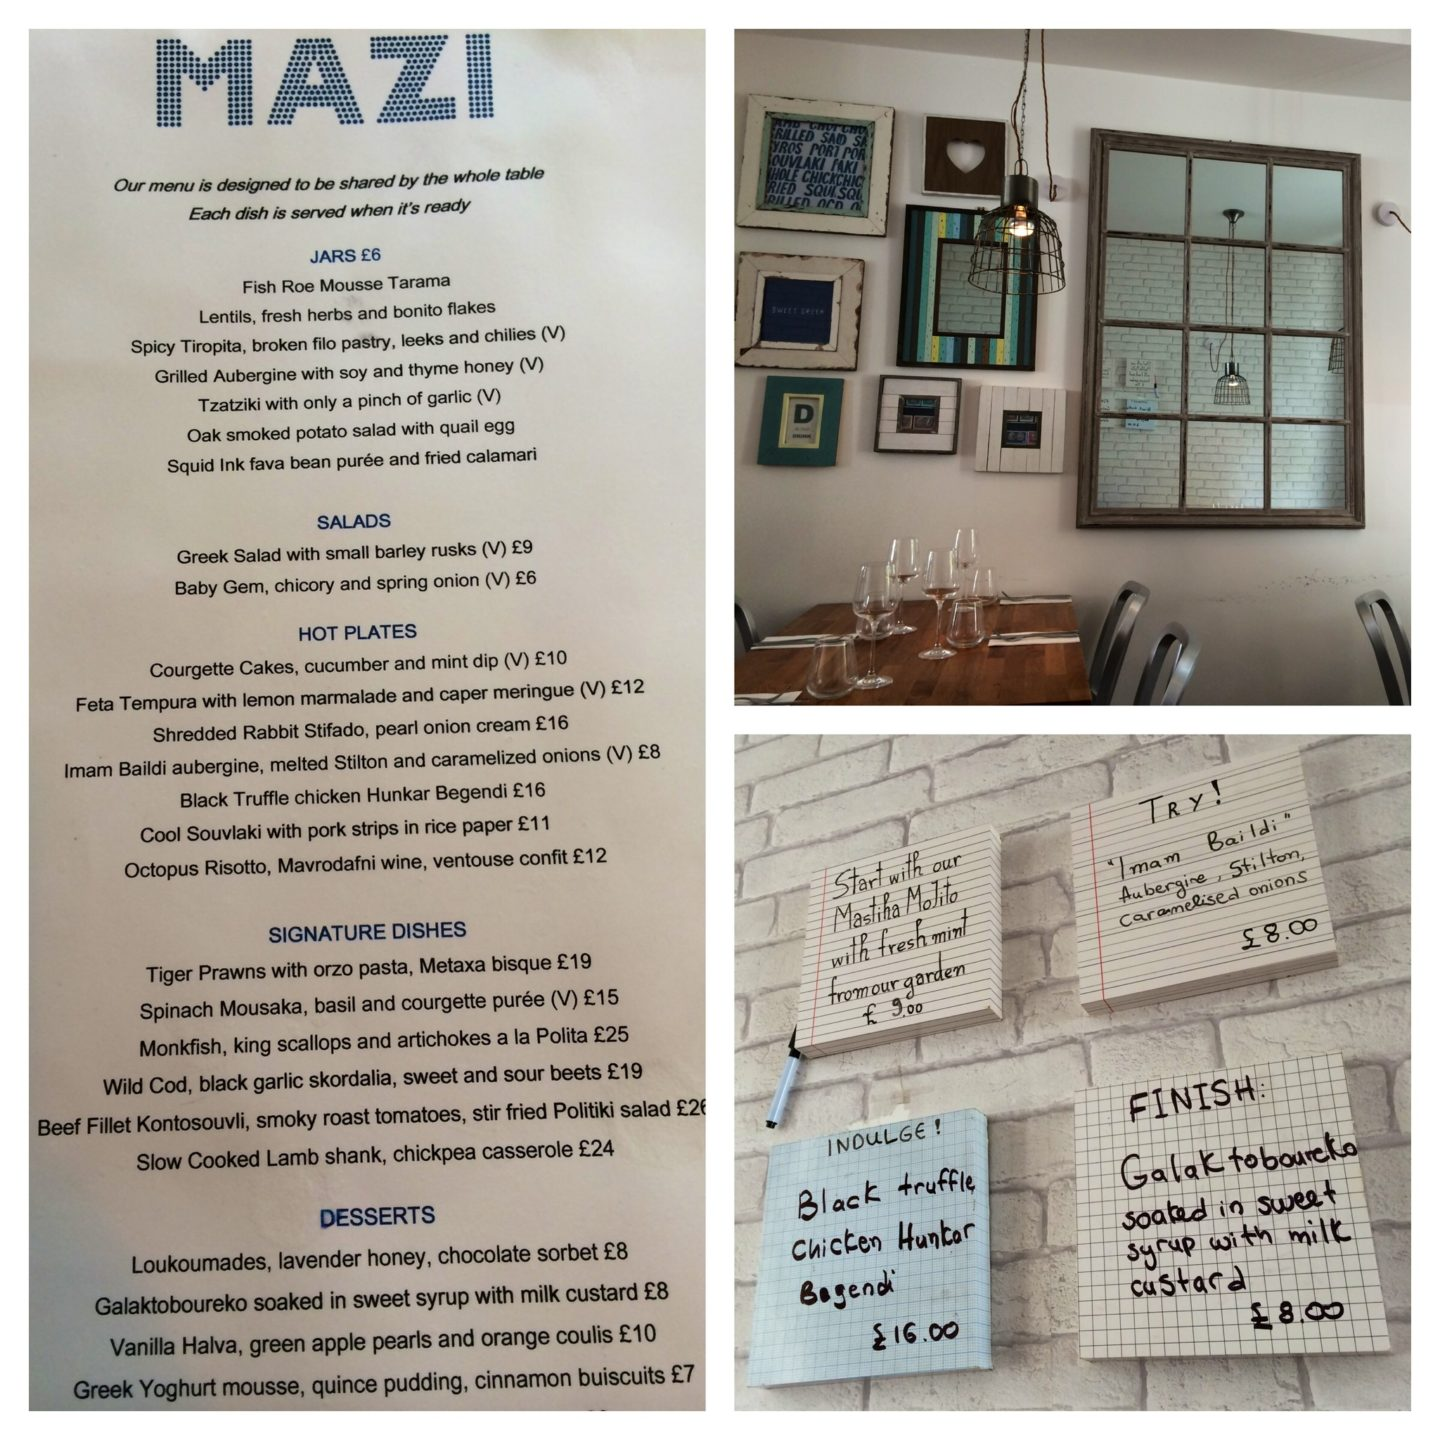 Latest food loves in London you MUST try!